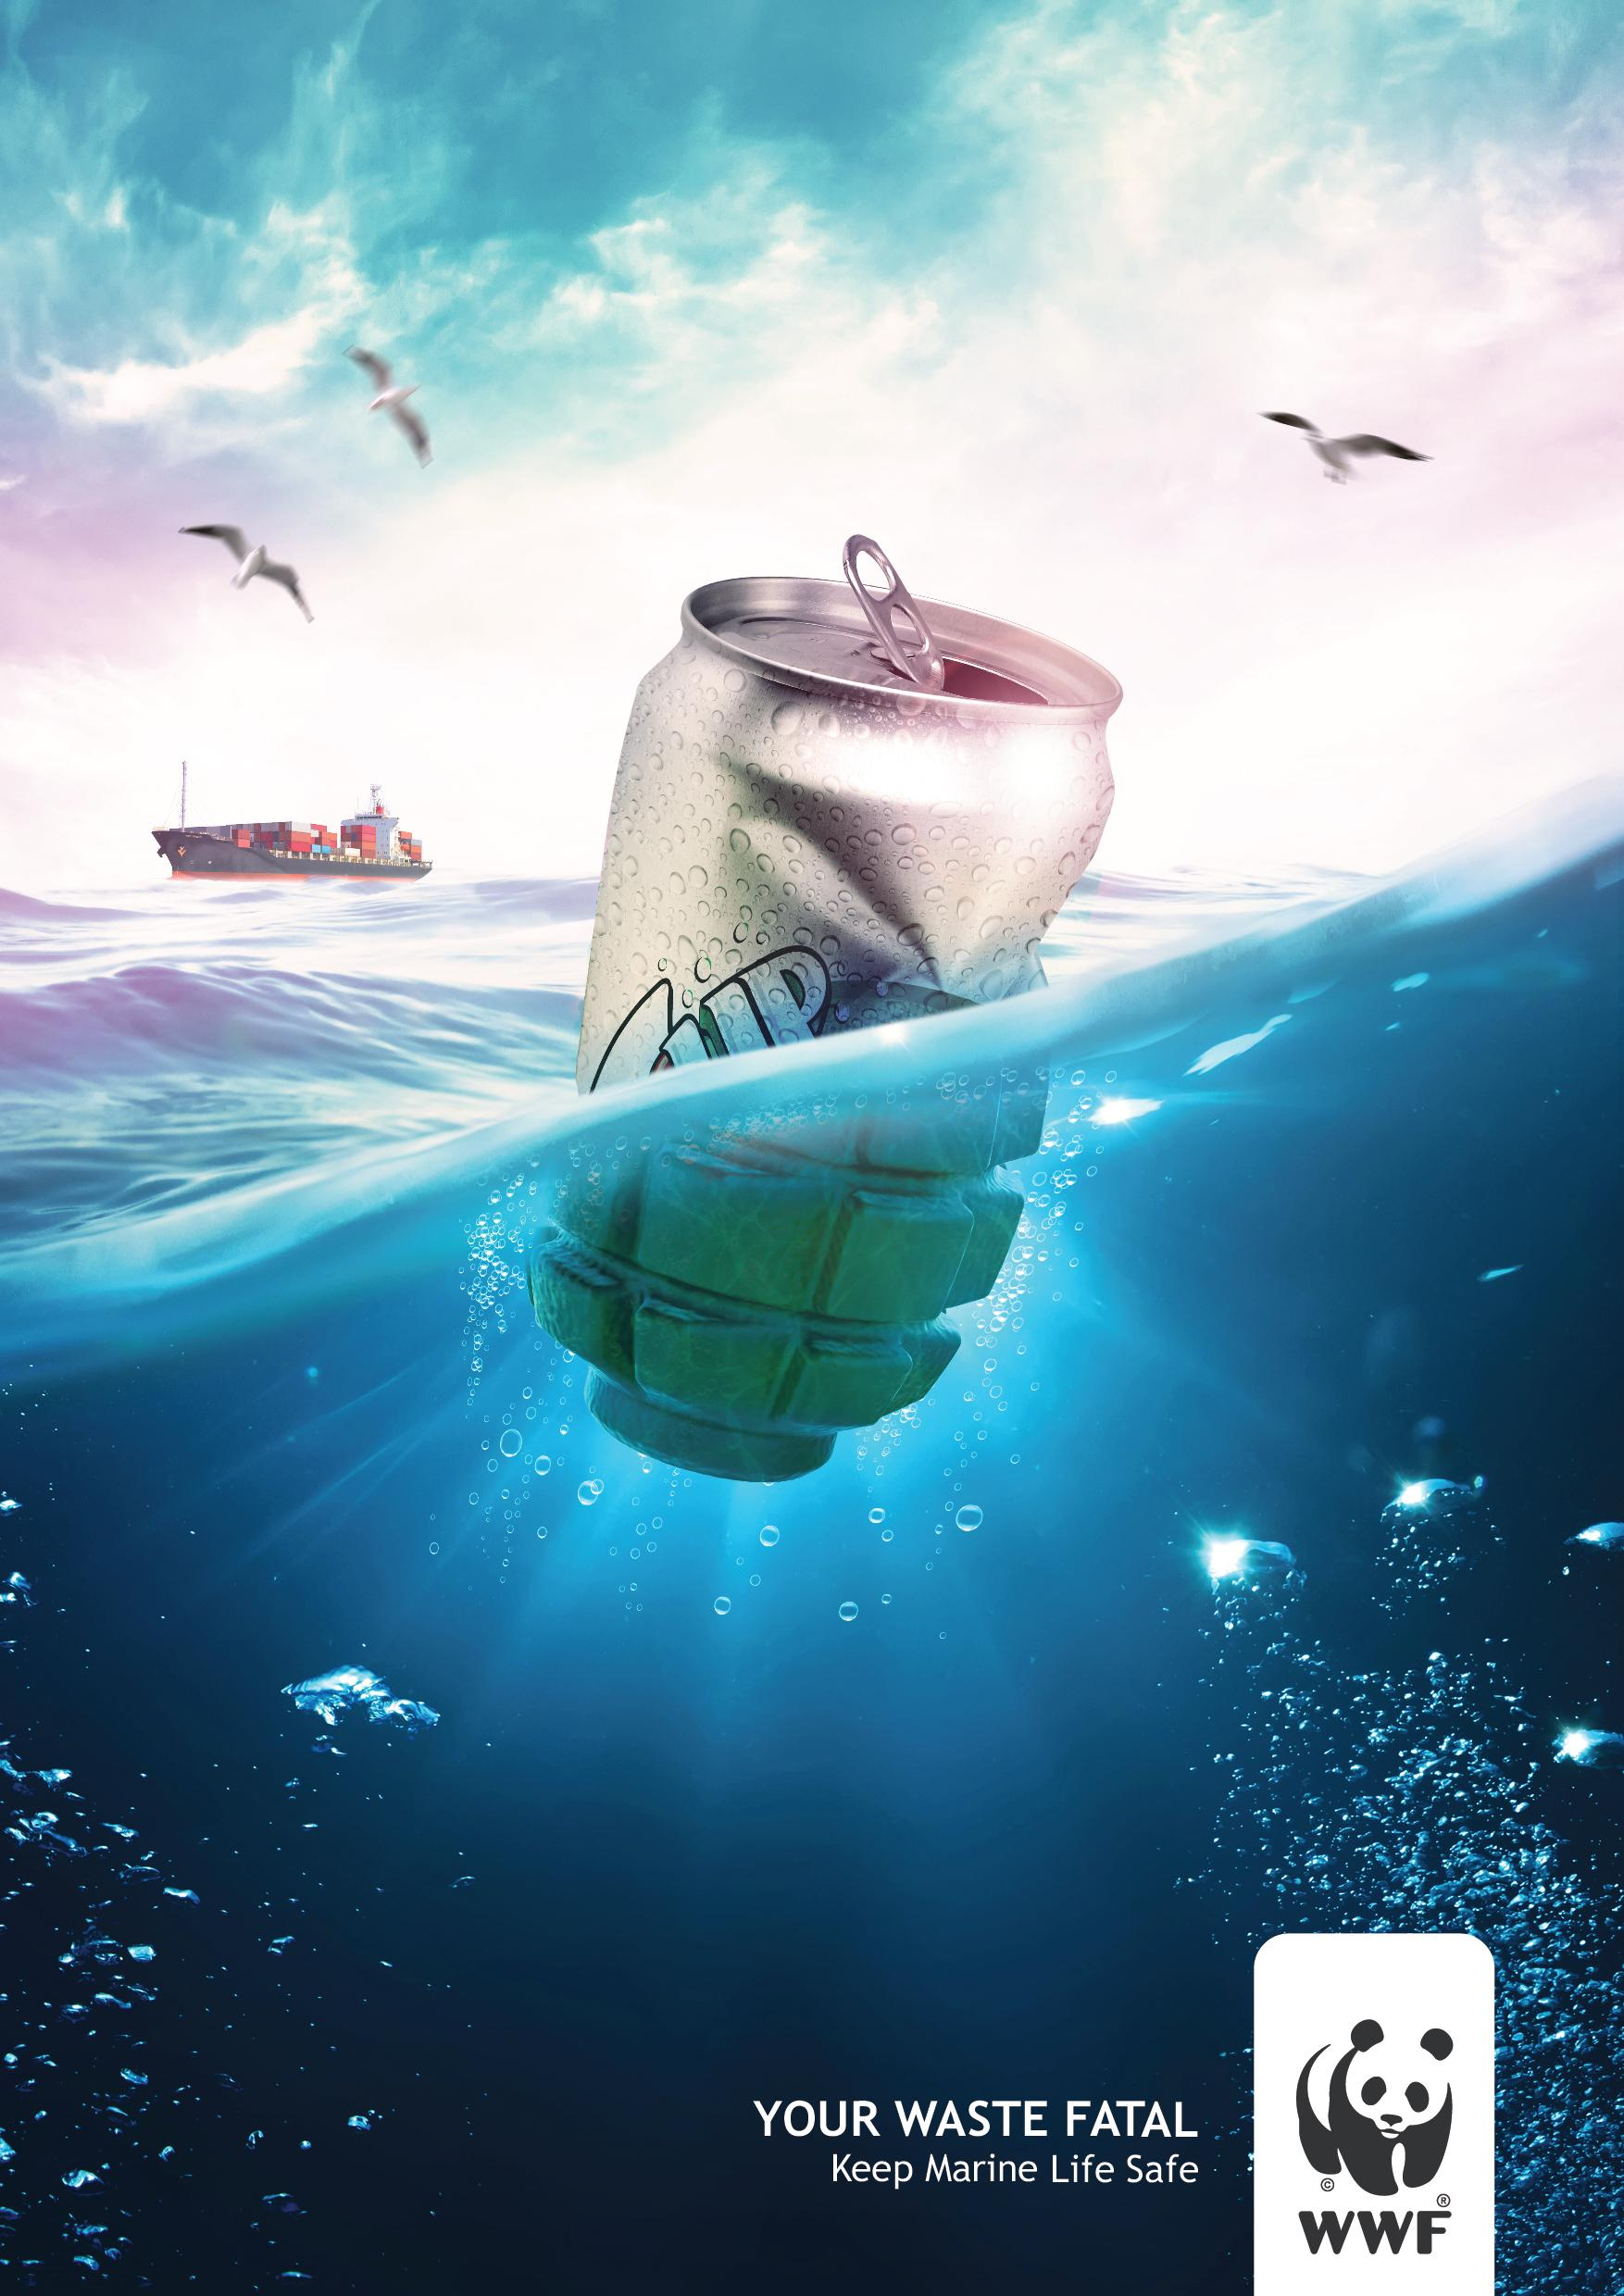 WWF Print Ad - Pollution of the Seawater, 2